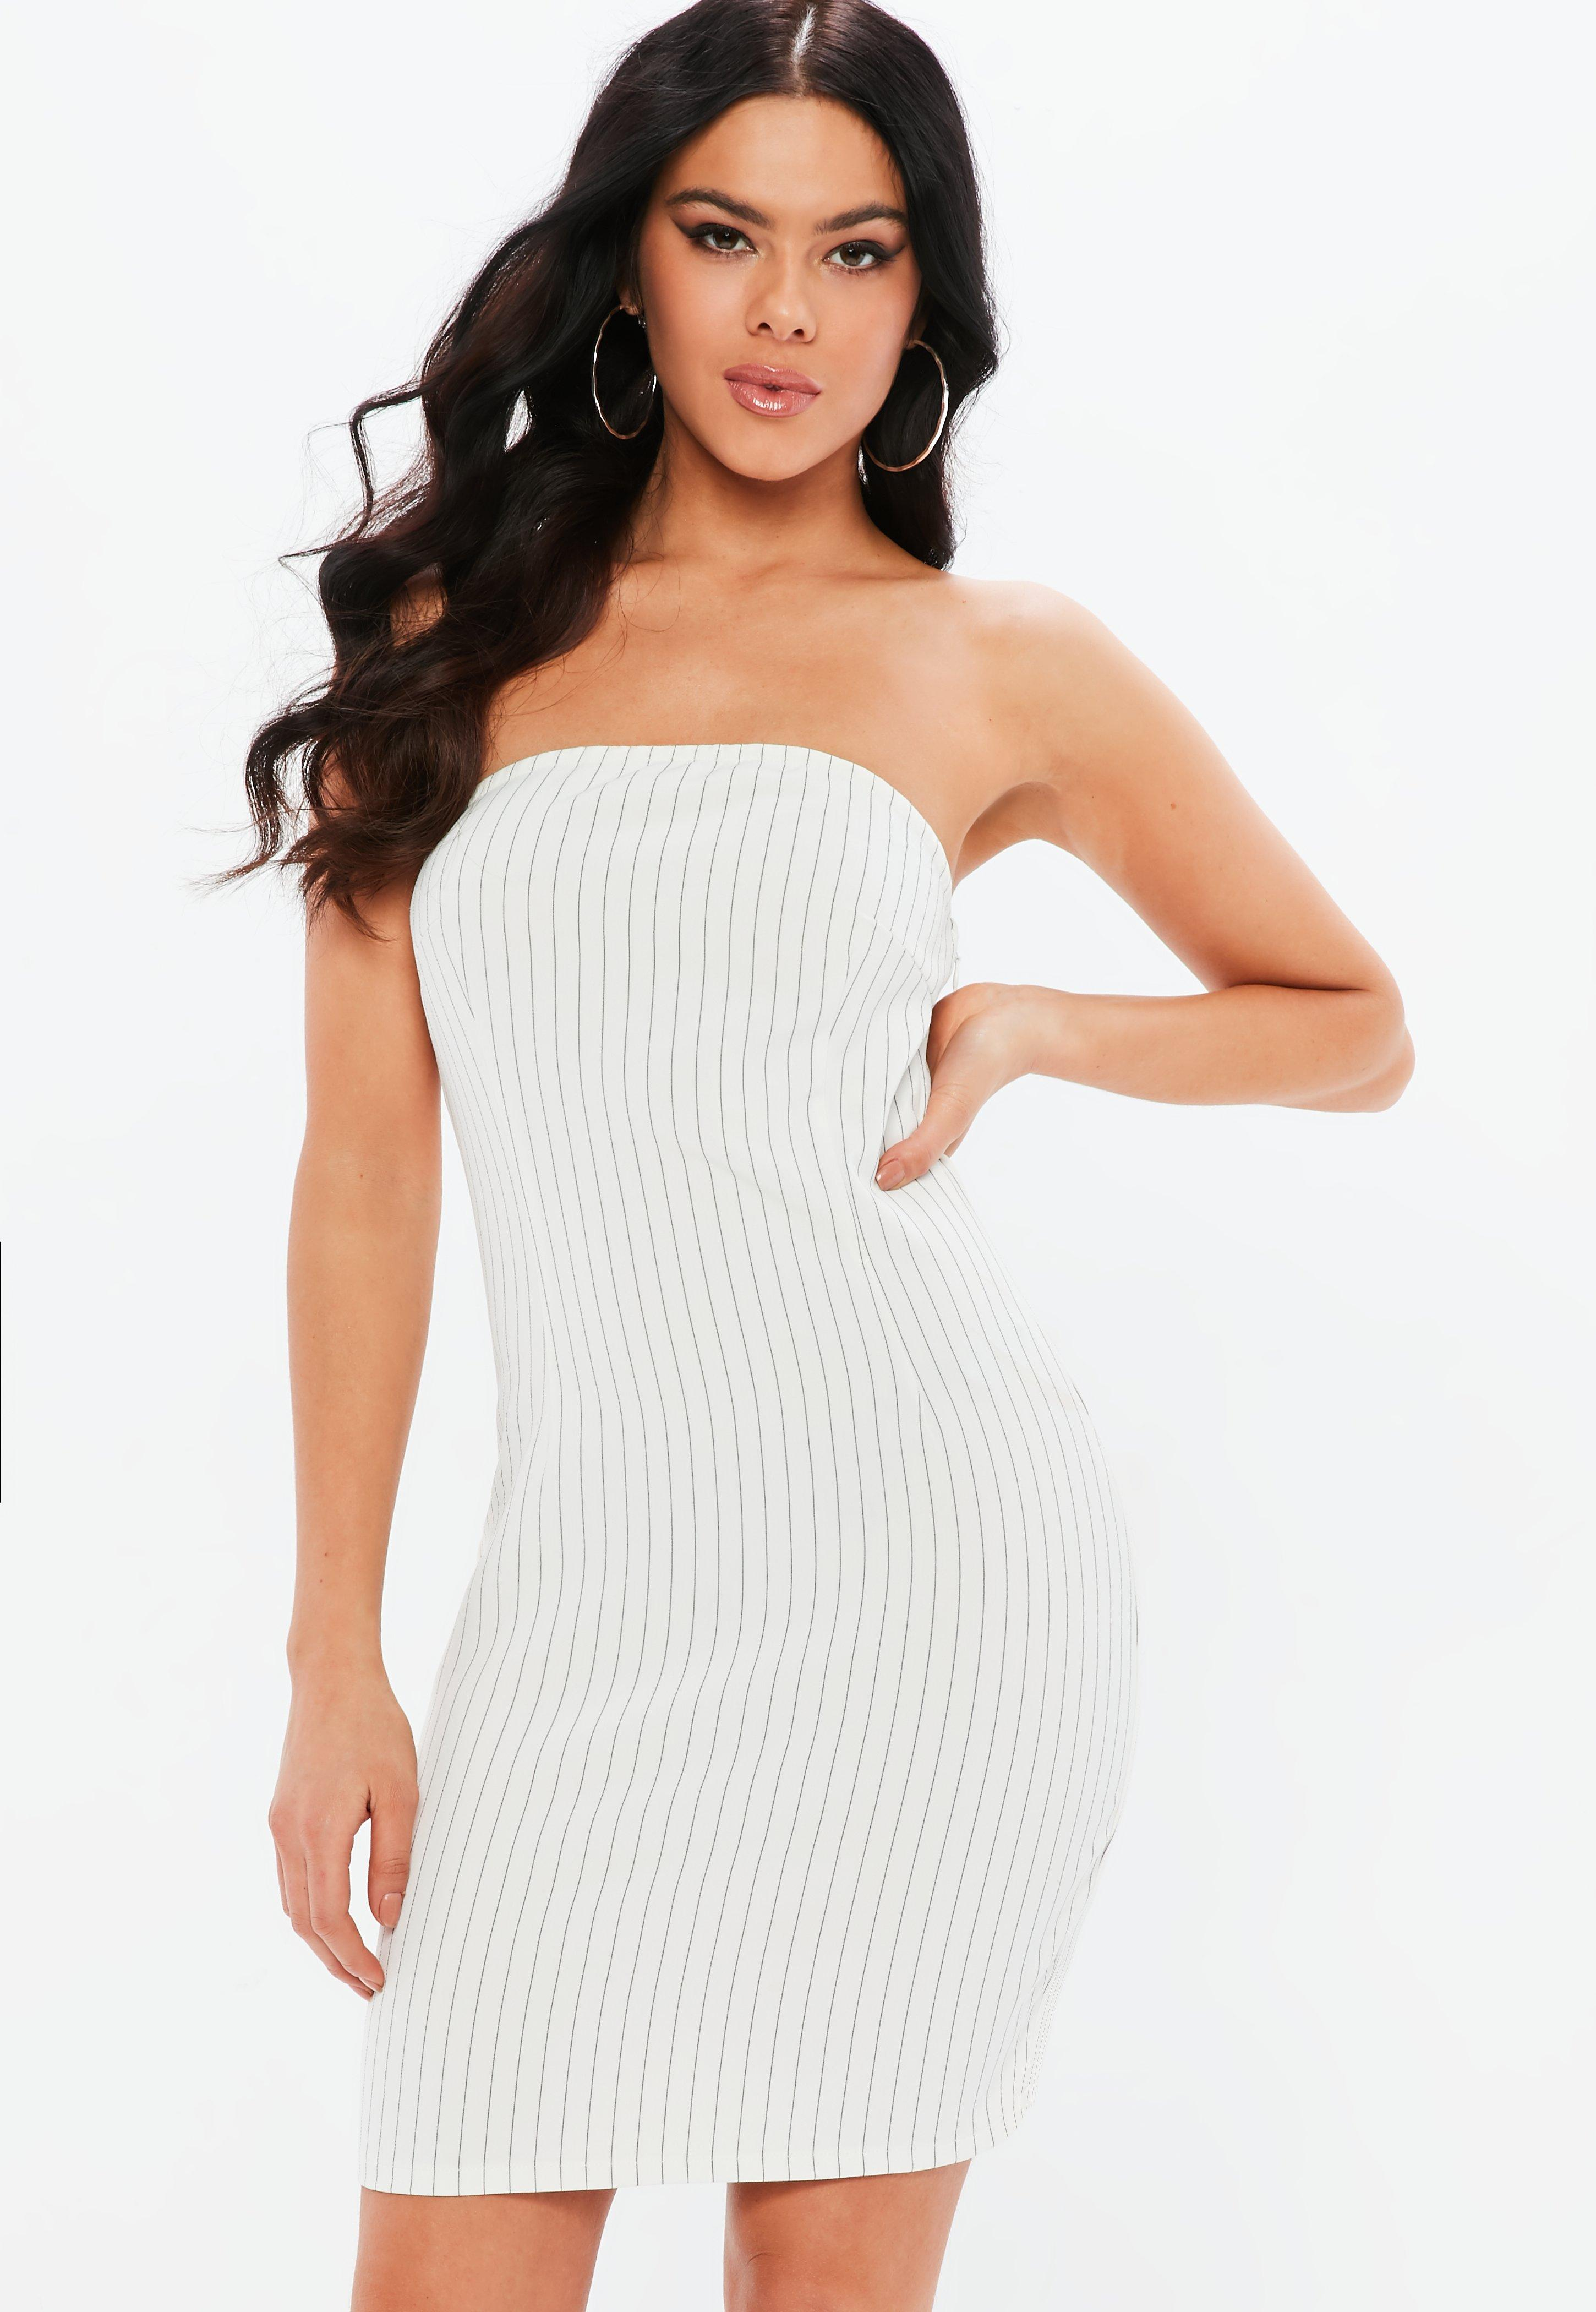 Madison Beer x Missguided White Pinstripe Mini Bandeau Bodycon Dress ...